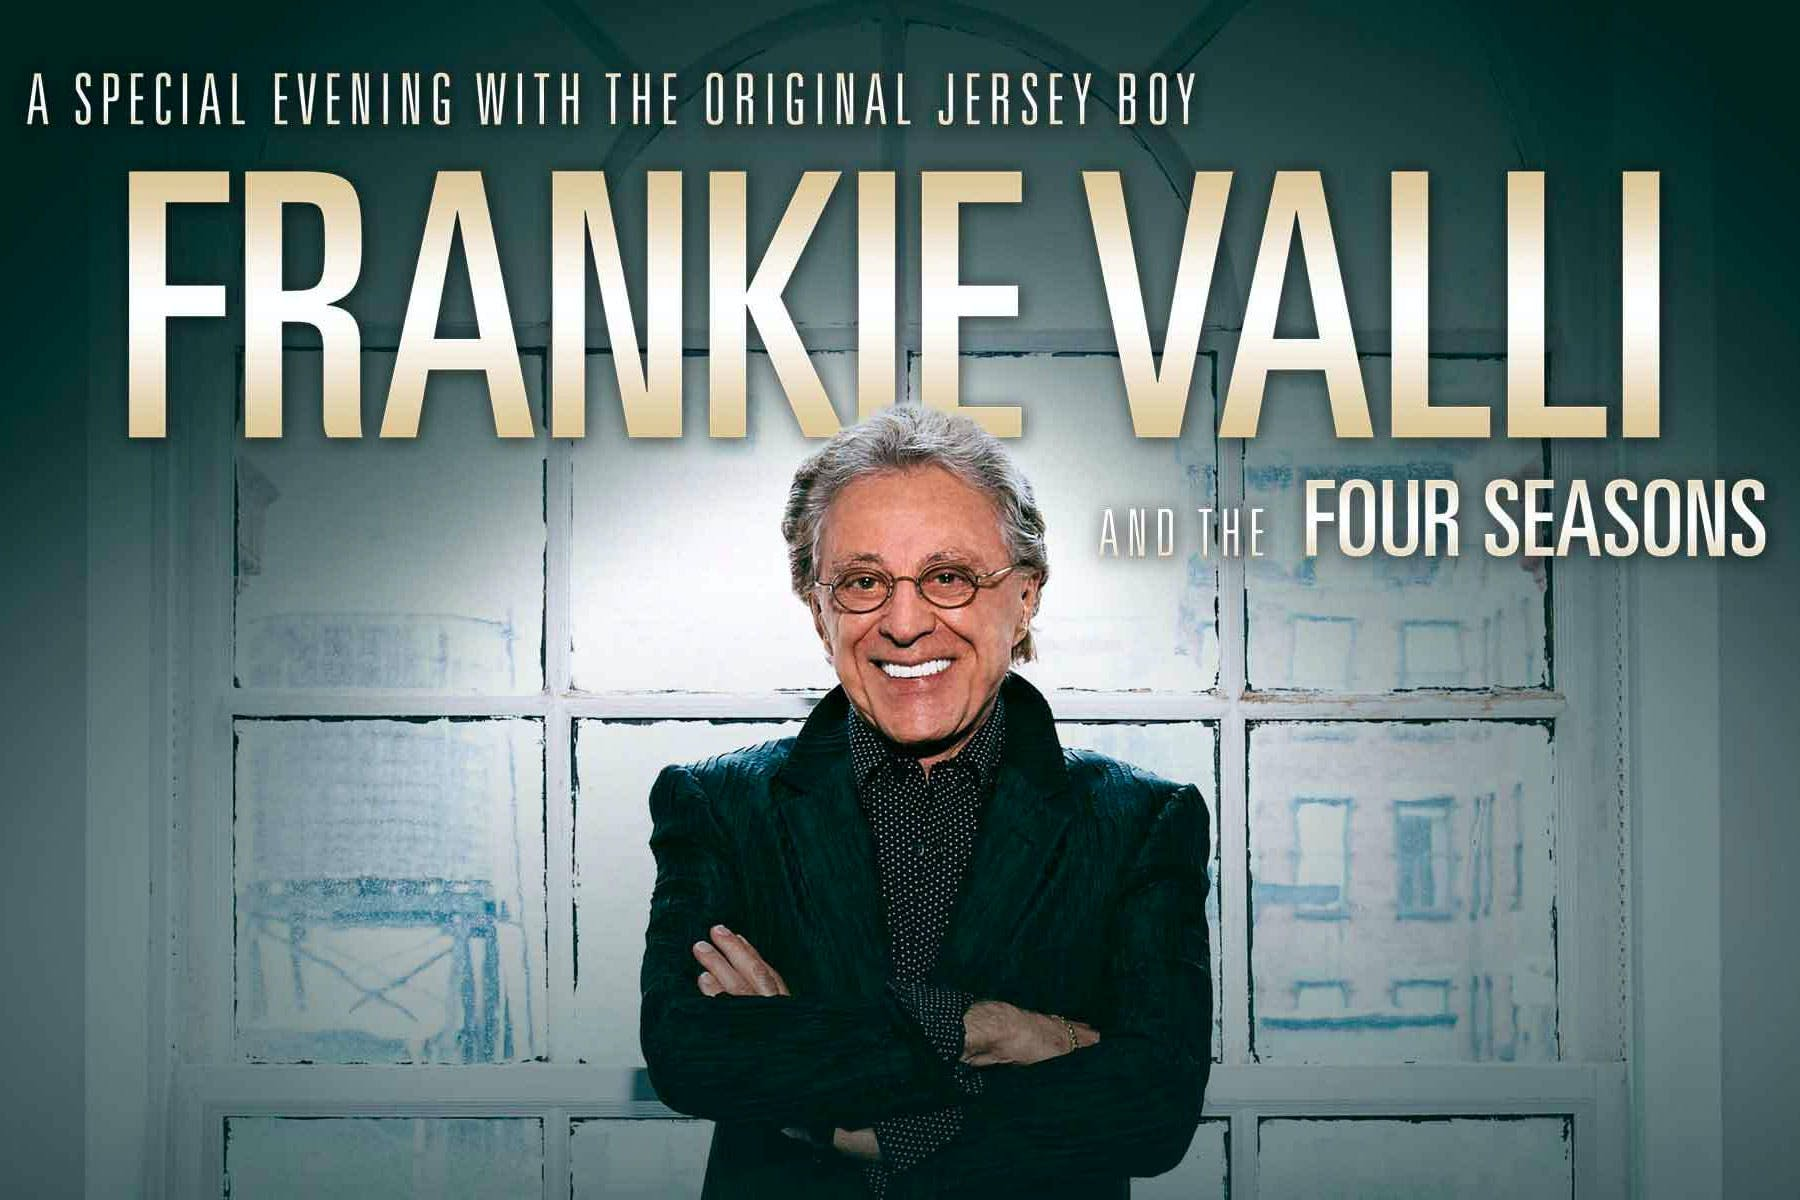 Frankie-Valli-and-The-Four-Seasons-Smart-Financial-Centre-Sugar-Land